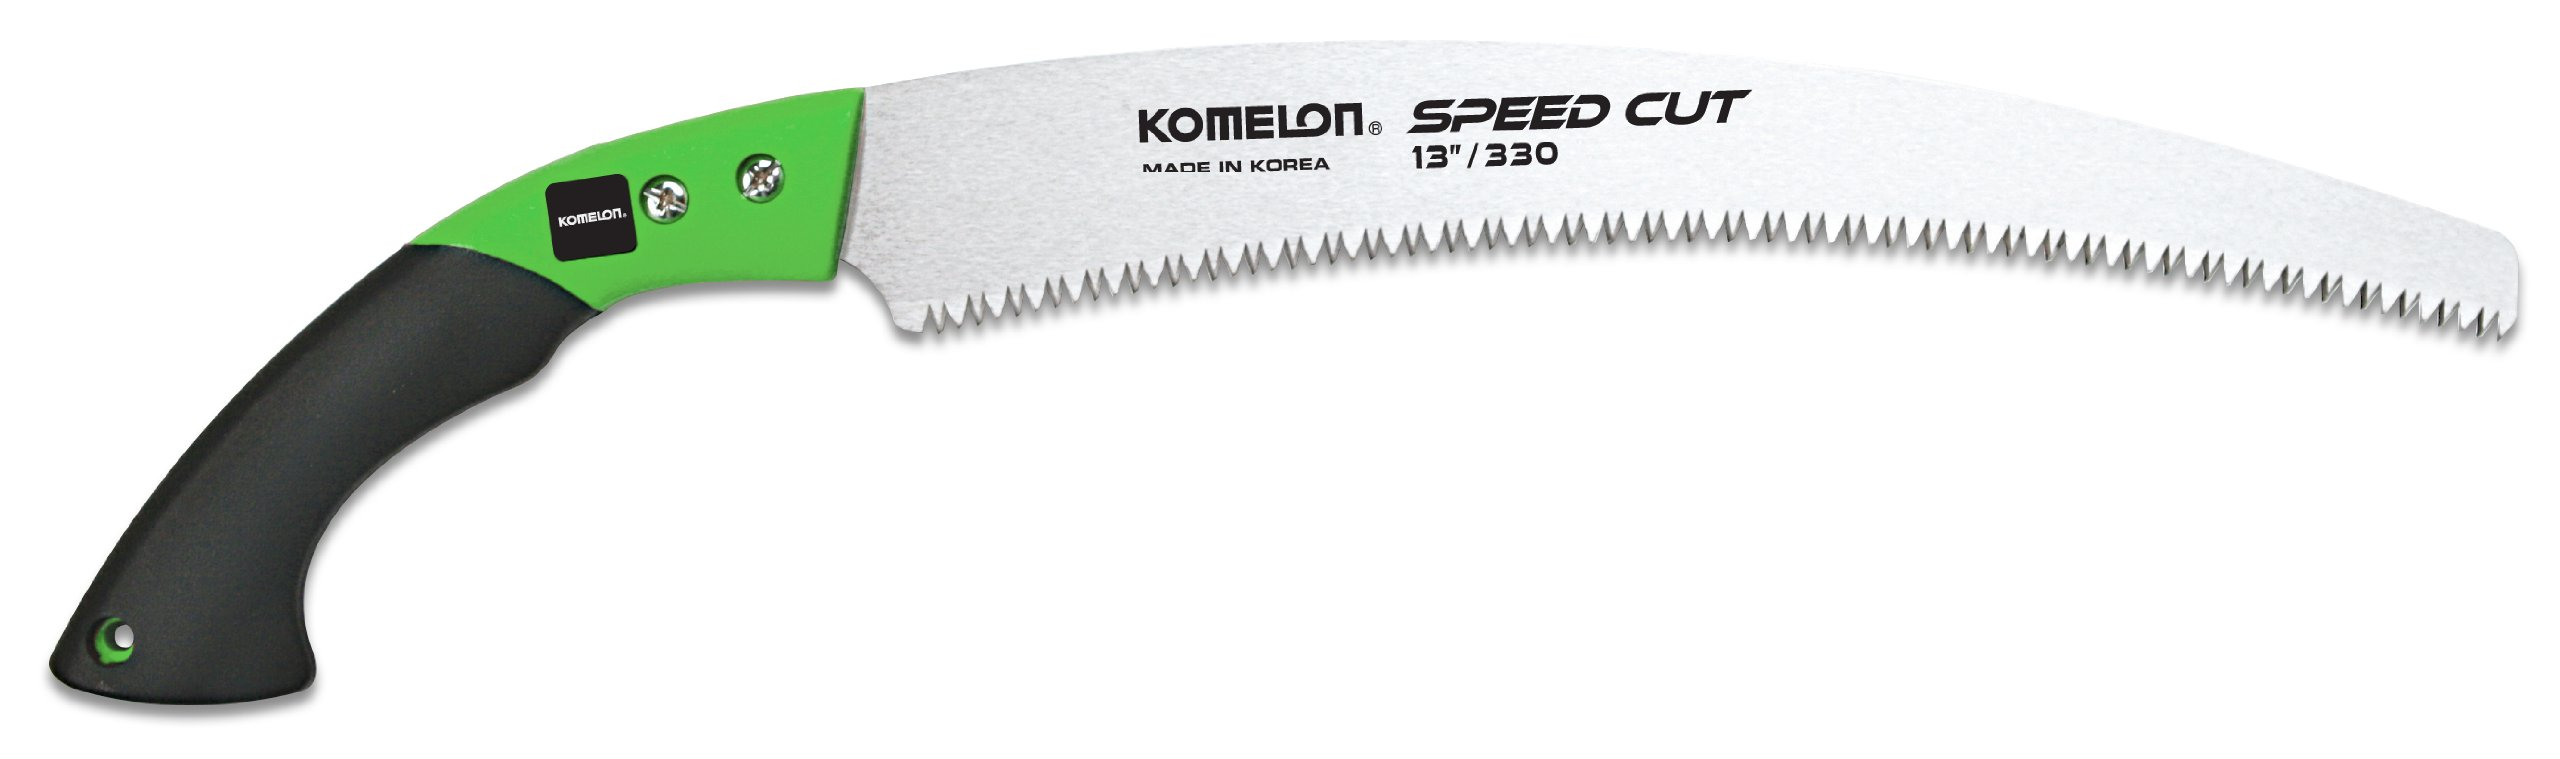 Komelon Speed Cut Curved Pruning Saw, 13-Inch by Komelon